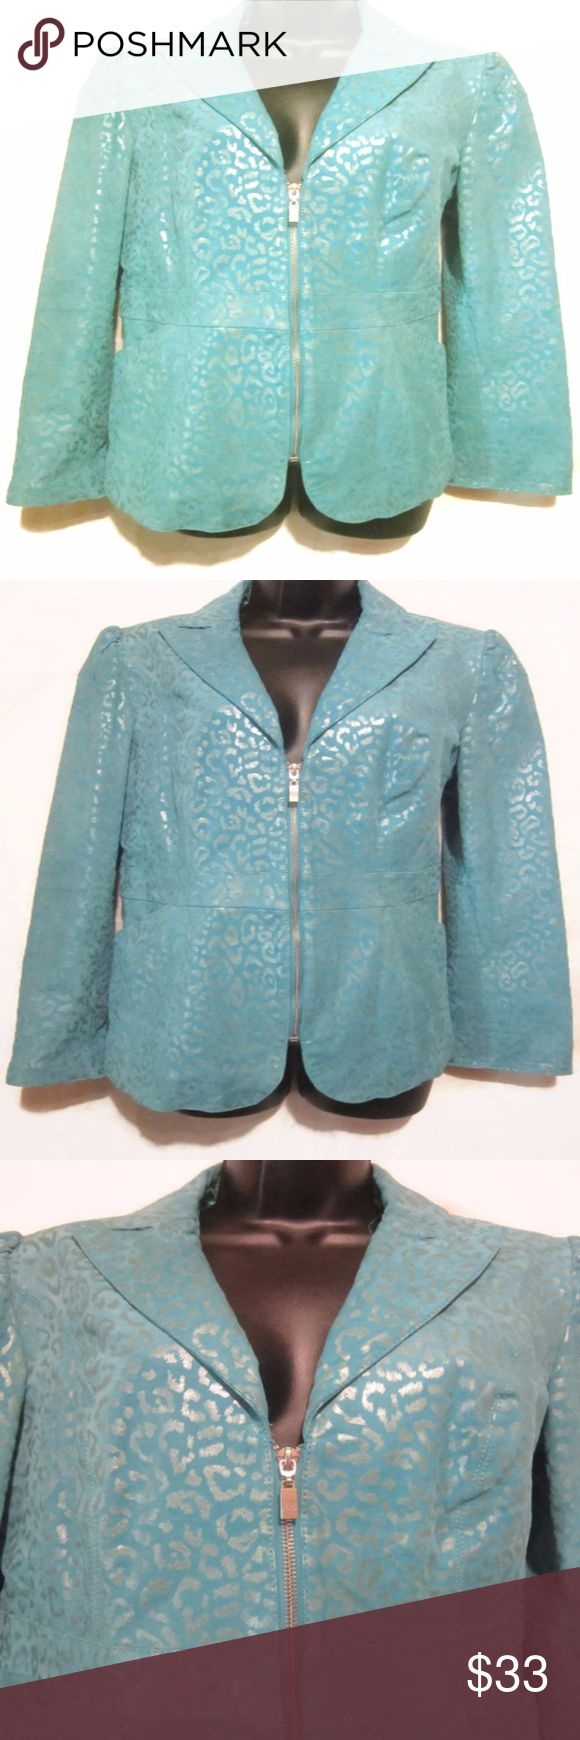 """Pamela McCoy Womens Size S Leather Teal Animal Gorgeous Zip Up Jacket from Pamela McCoy  Silver Animal print with a Subtle Sparkle  Pretty Blue  Full Zip  2 Front Pockets  High Quality Heavy Duty Genuine Suede Leather  Lined   Women's Size Small Measures Armpit to Armpit Zipped 18"""" Length from Shoulder to Hem 26""""  Excellent Pre-Owned Condition  Nice Jacket!!  Smoke Free Environment Pamela McCoy Jackets & Coats Blazers"""